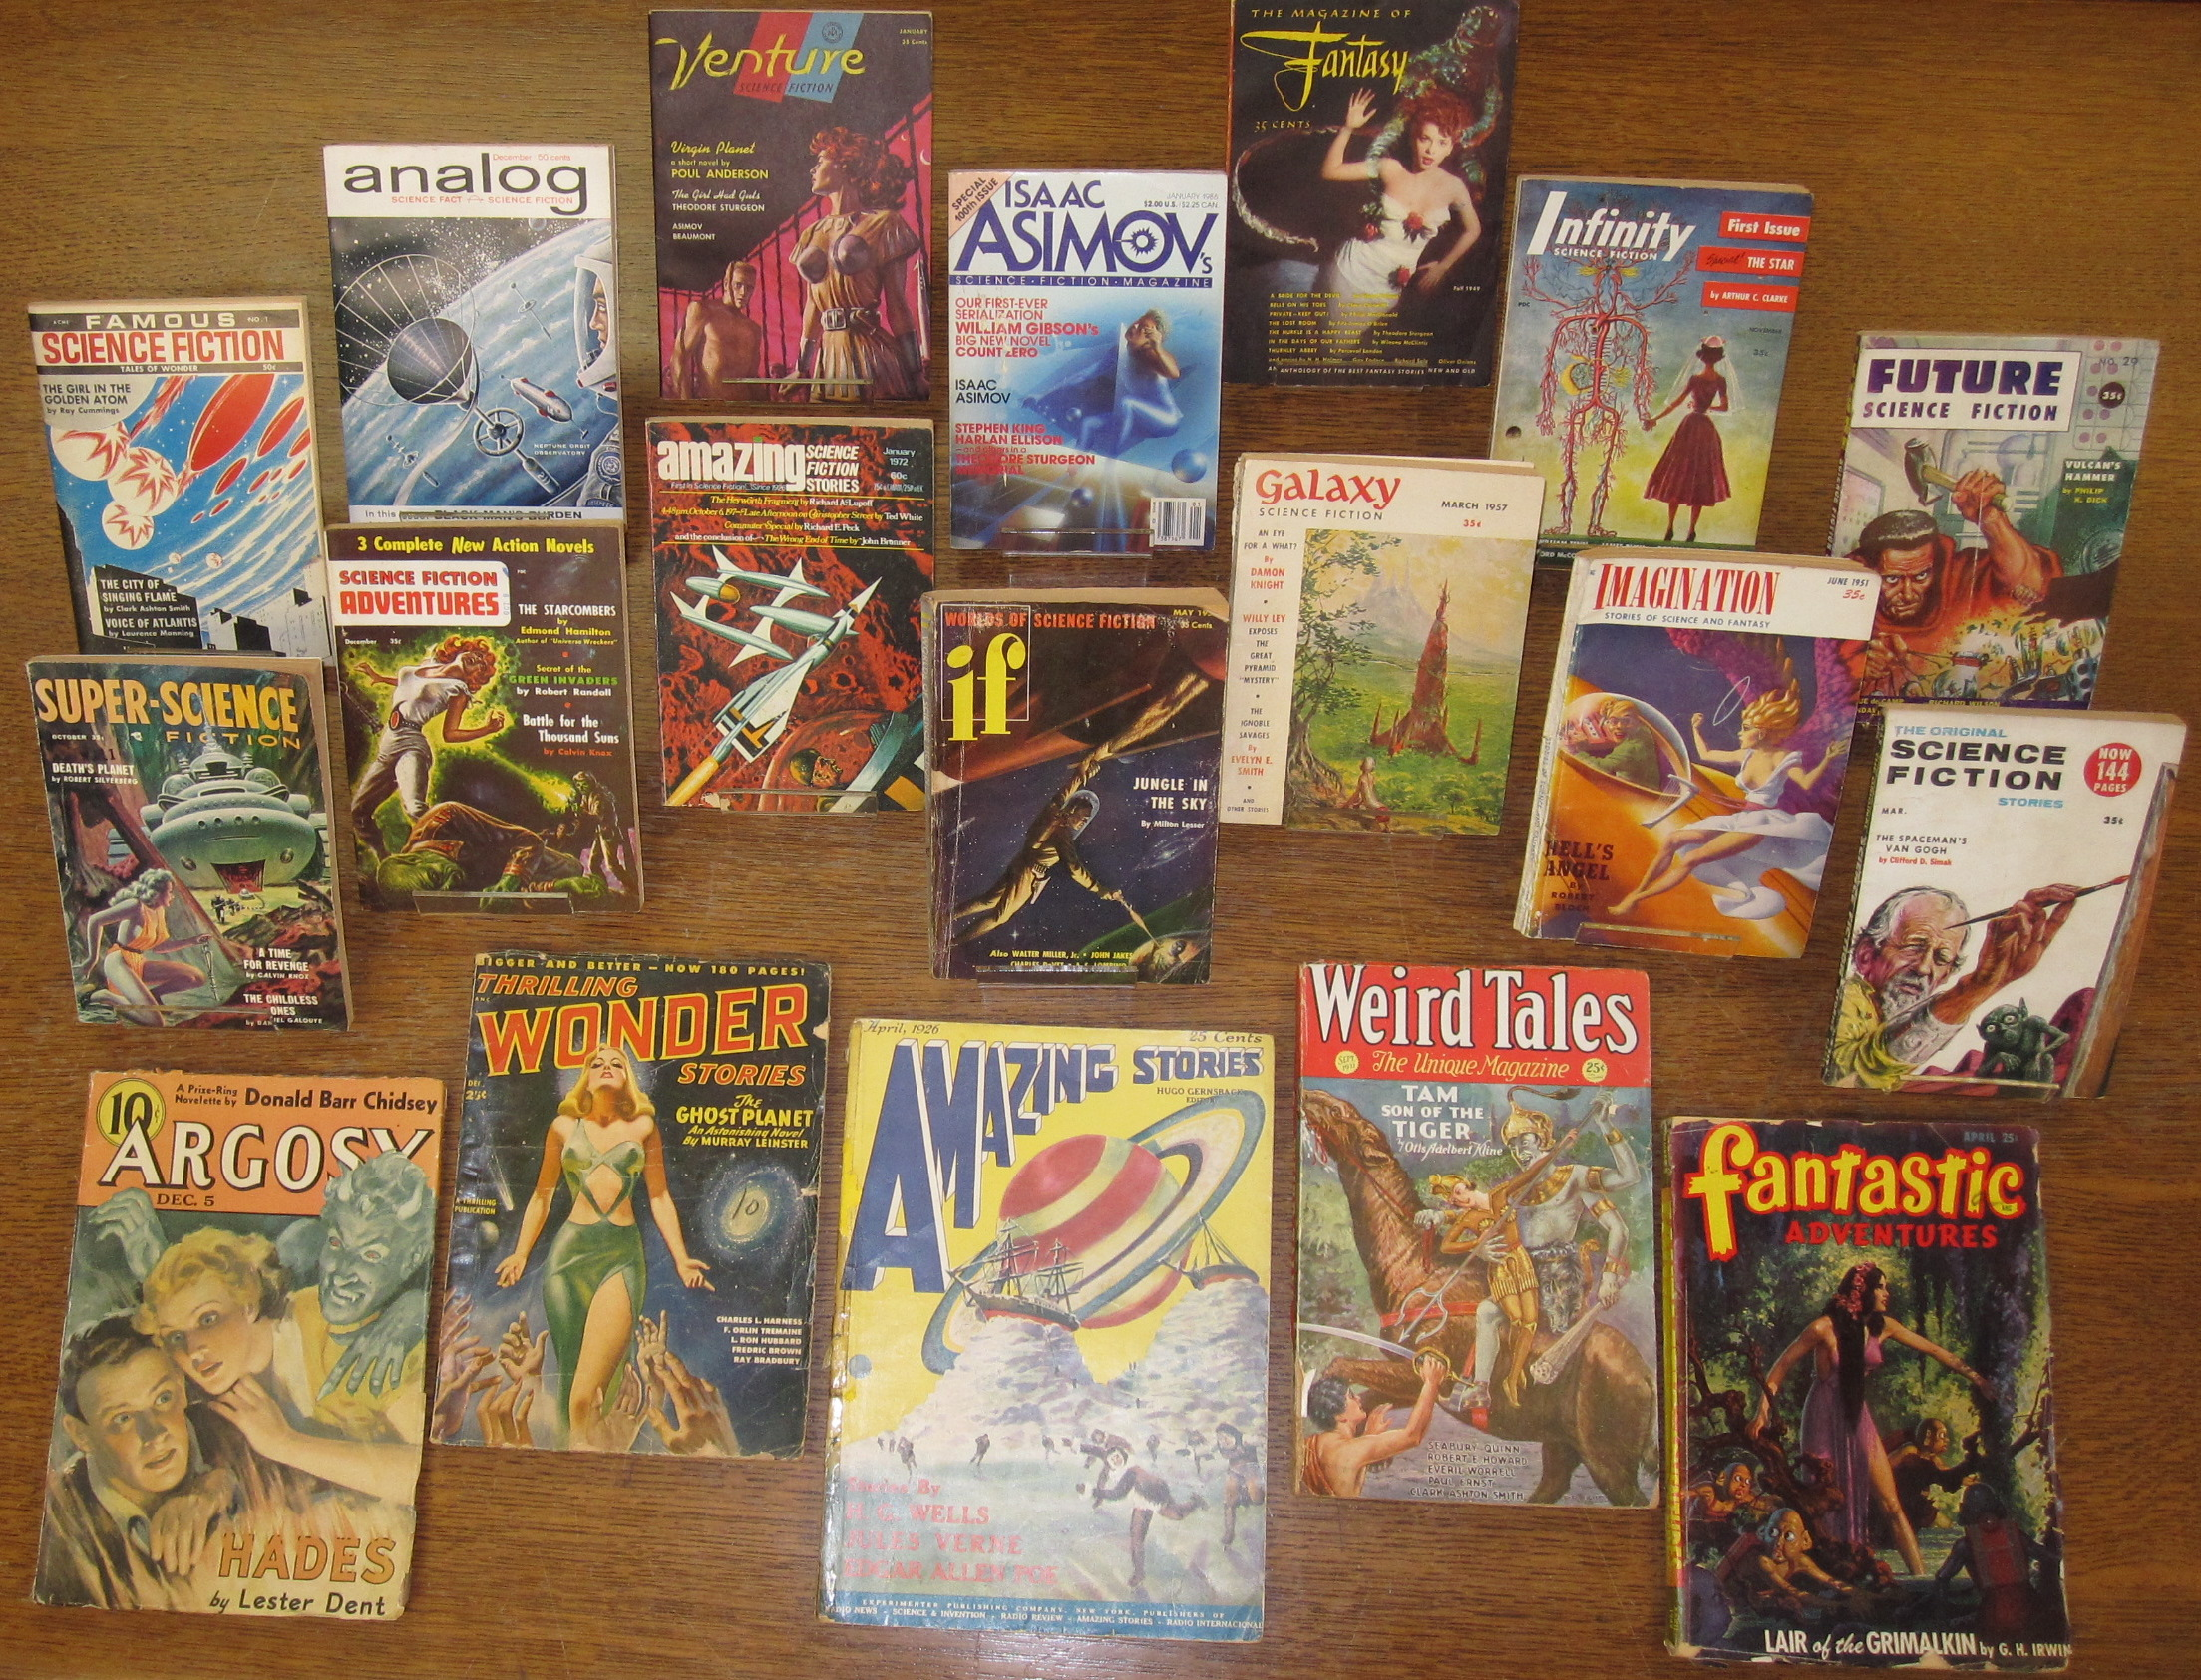 Image 1: The Elizabeth Chater Science Fiction Collection includes numerous rare pulp titles dating back into the early 1920s.